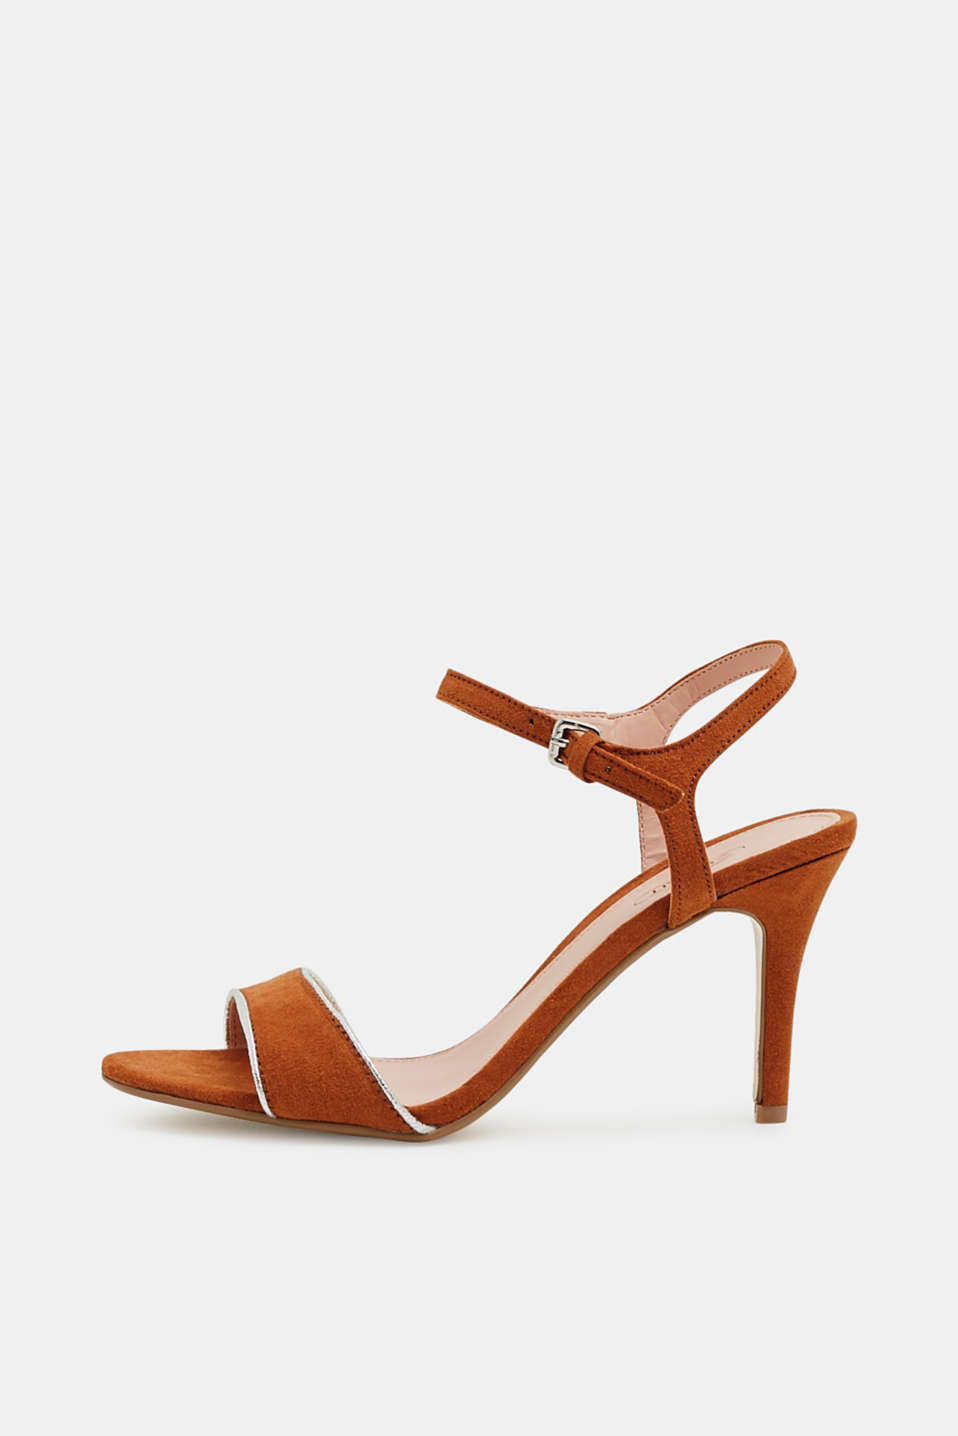 Esprit - Suede sandals with metallic accents